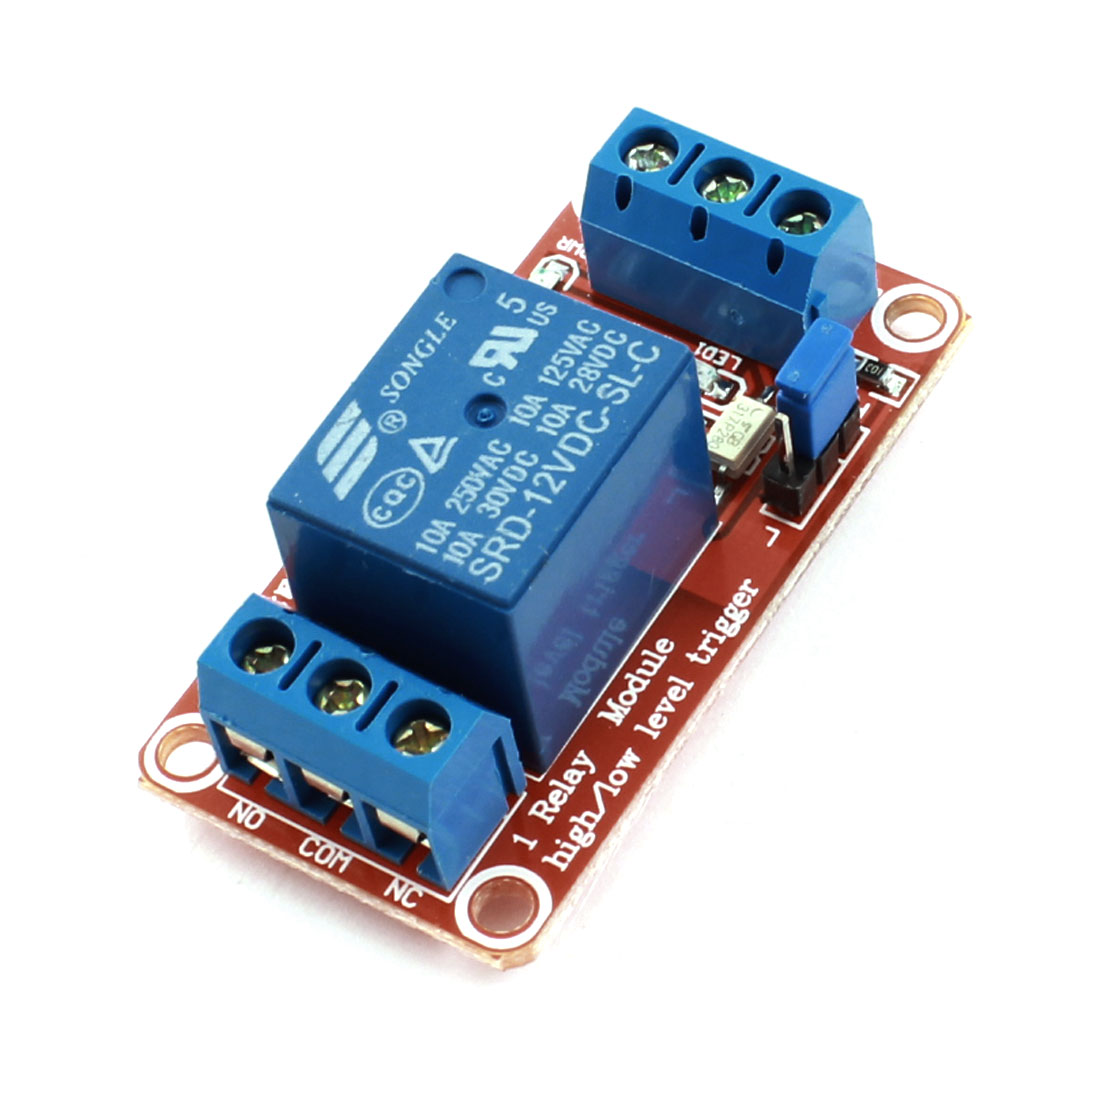 SRD-12VDC-SL-C 1 Channel High/Low Level Trigger Relay Module DC12V 10A